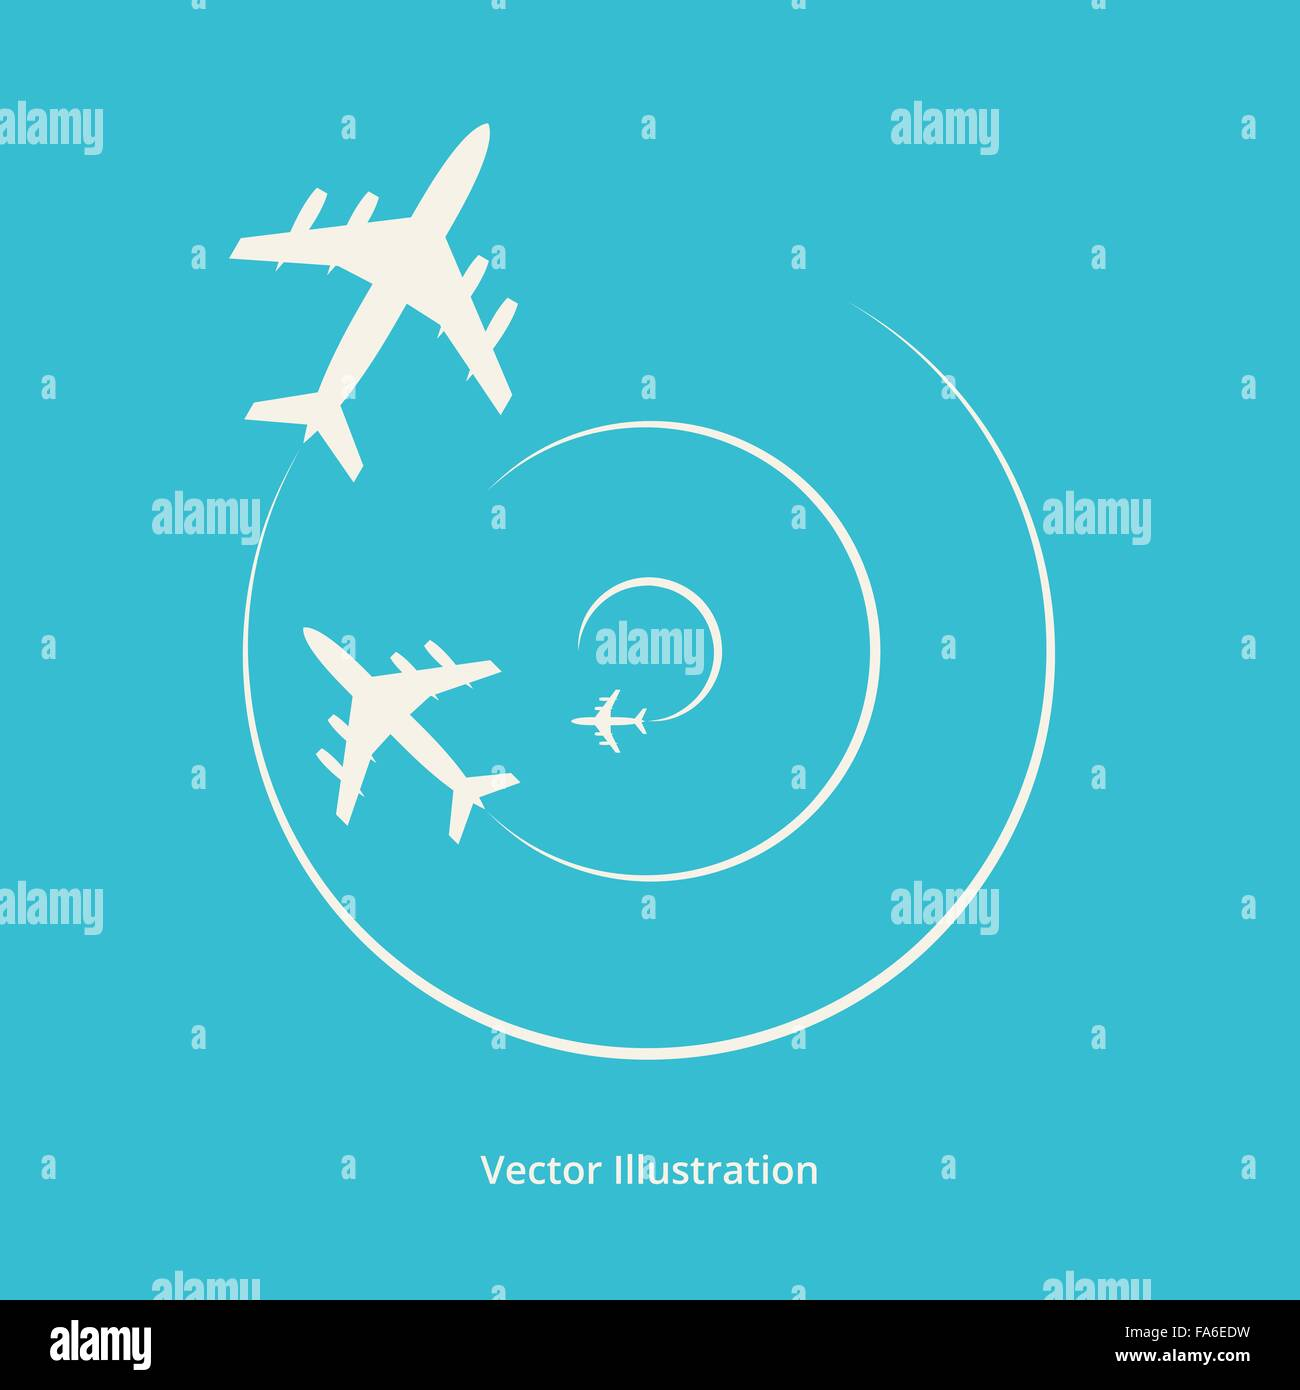 Vector silhouette of aeroplanes for your design - Stock Image